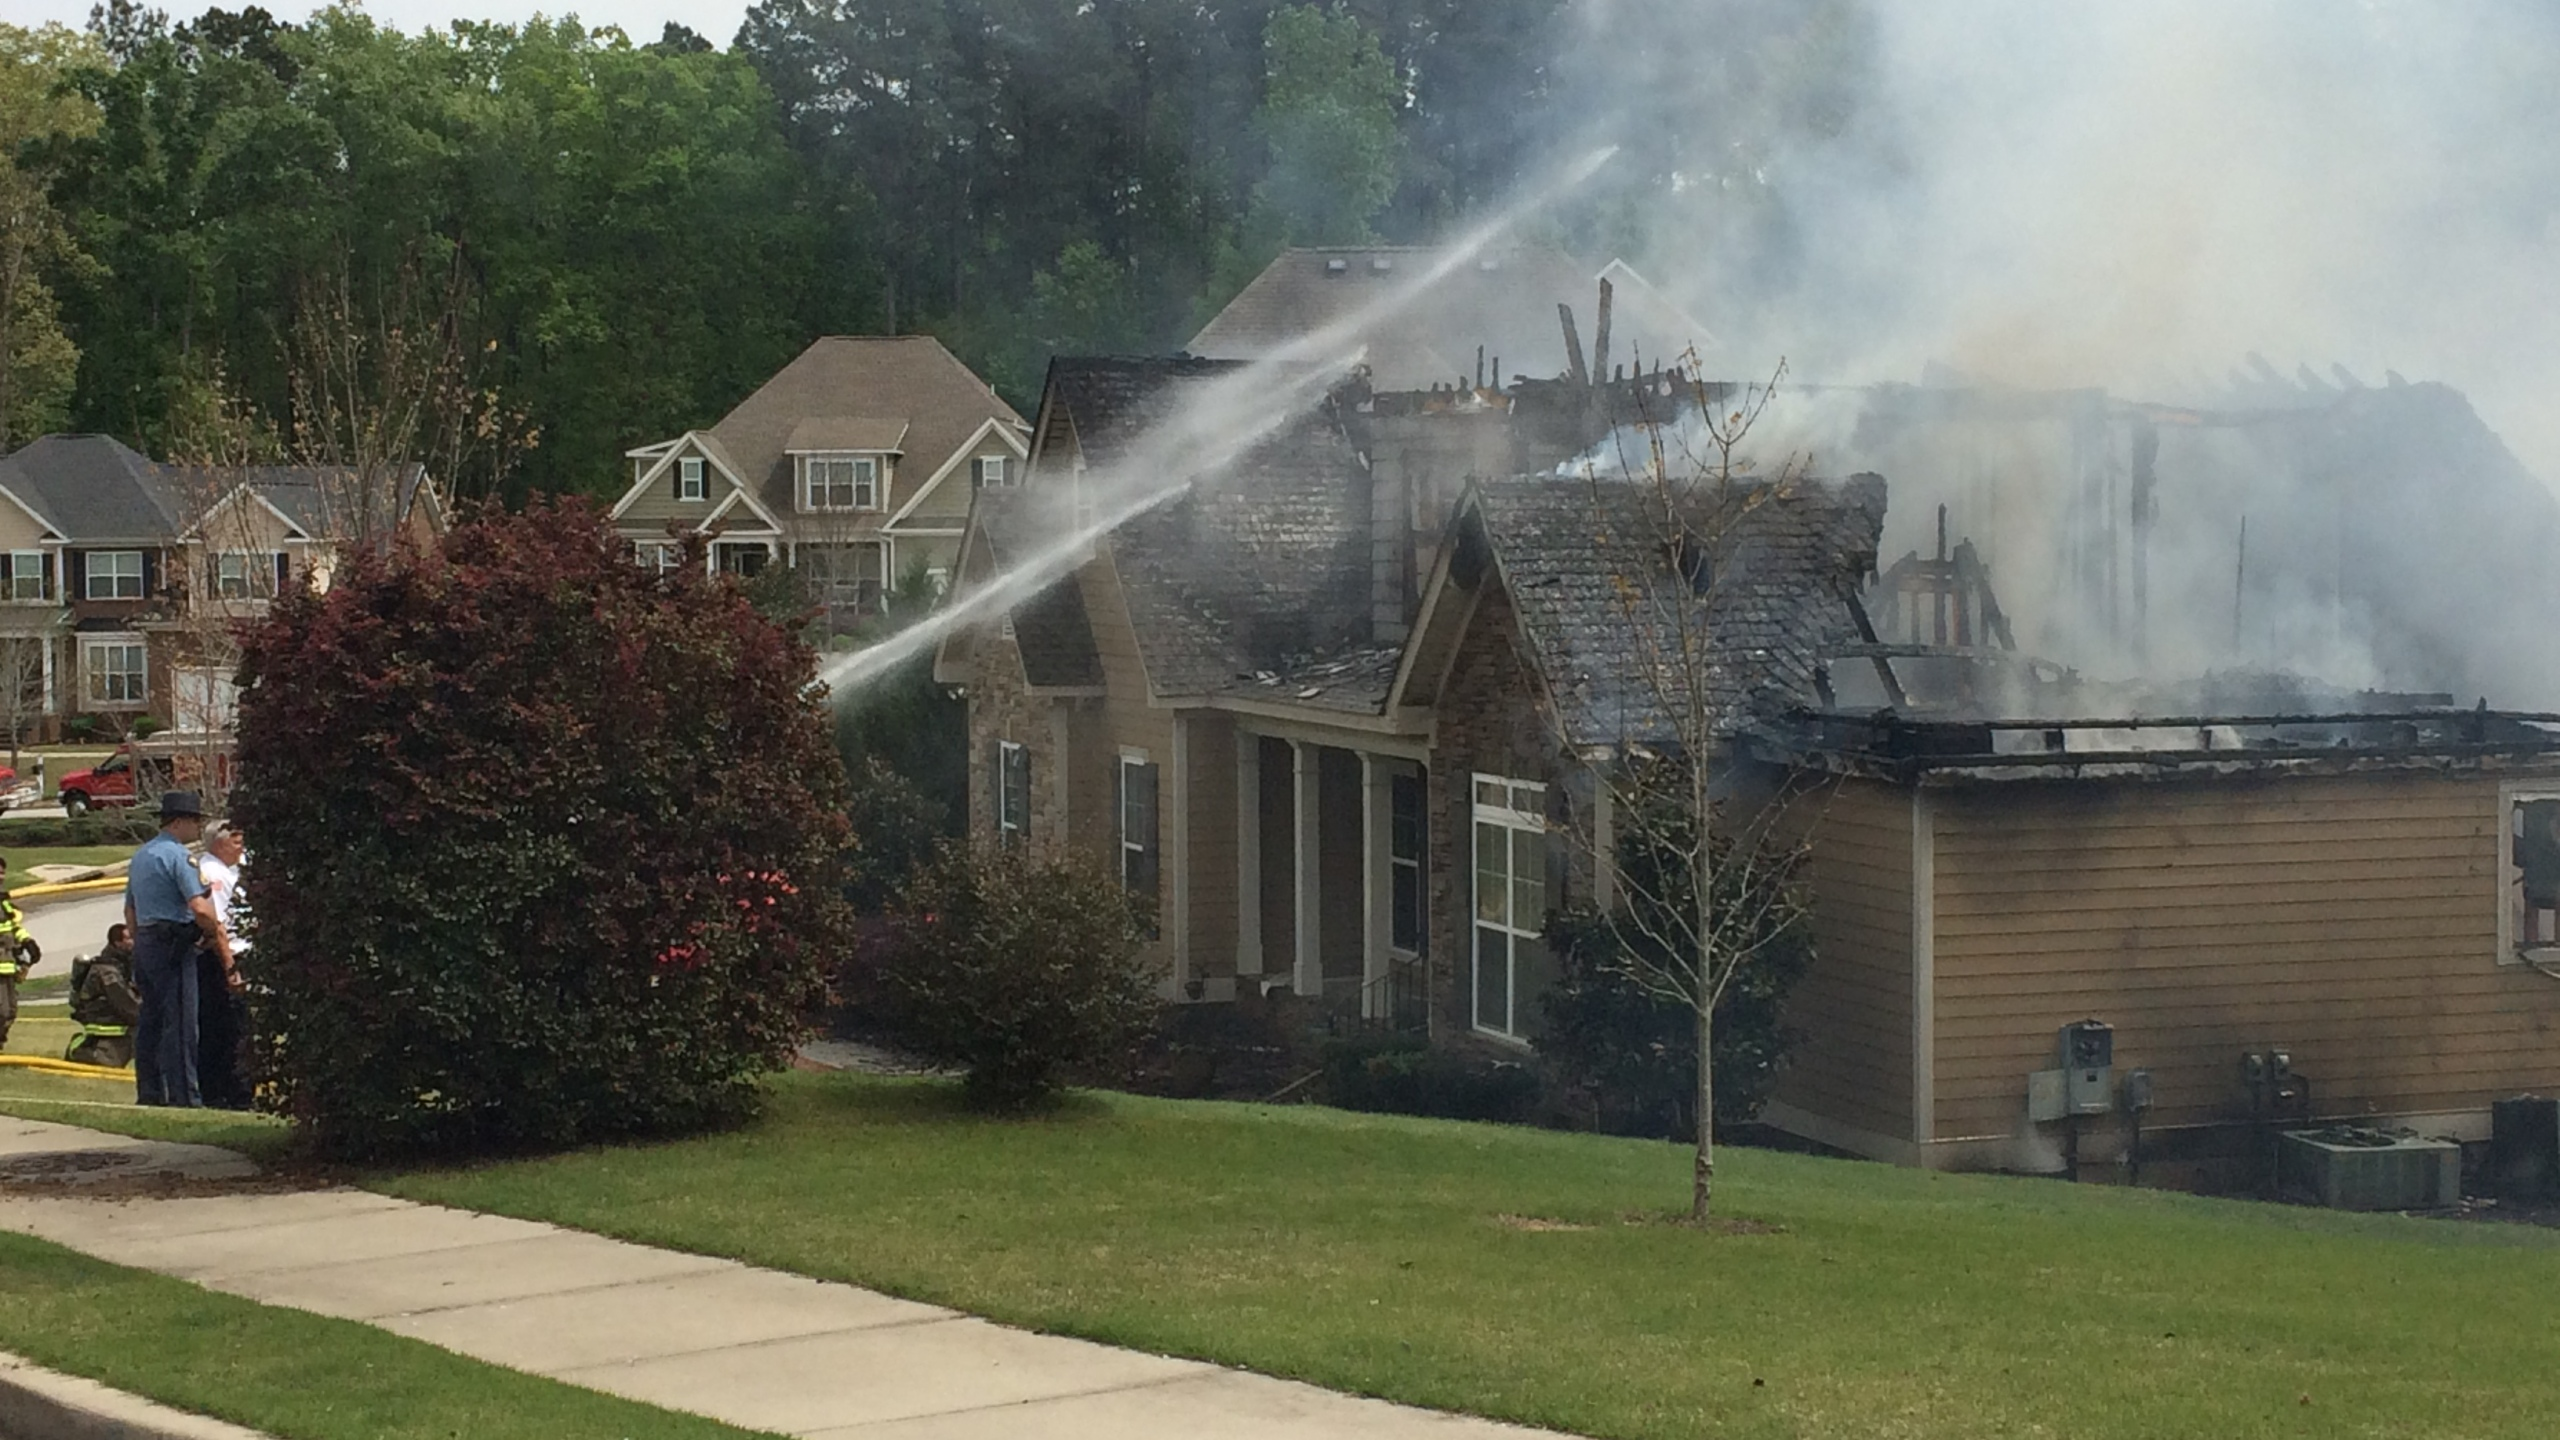 Serious fire at home on Sumter Landing Lane in Evans - 4_6_16_135168